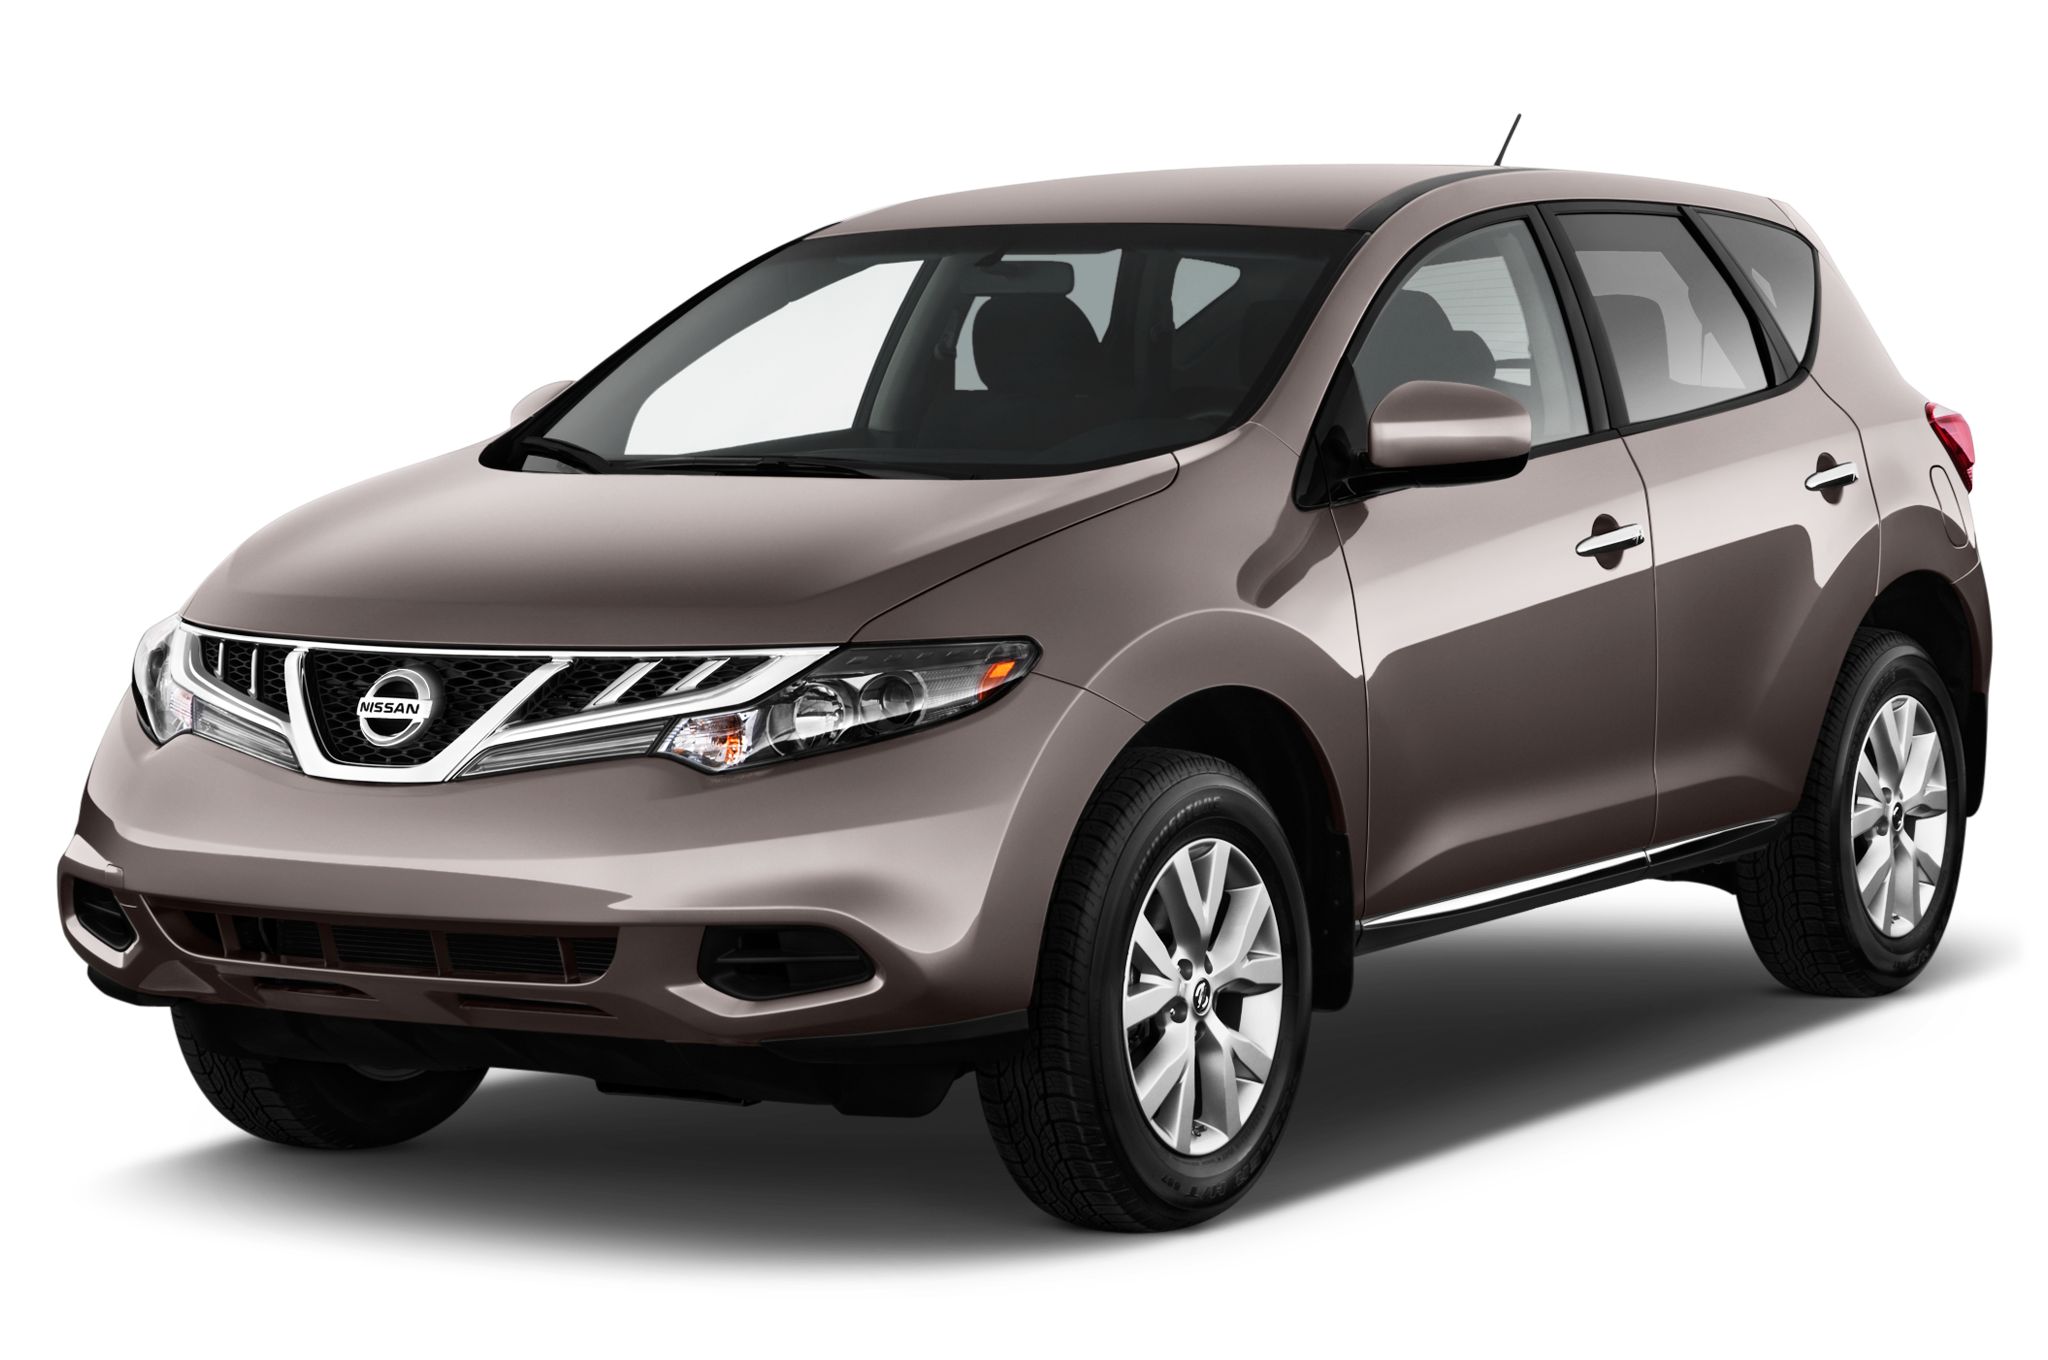 2013 Nissan Murano Reviews And Rating Motor Trend Rh Motortrend Com 2010  Nissan Murano S Used 2010 Nissan Murano